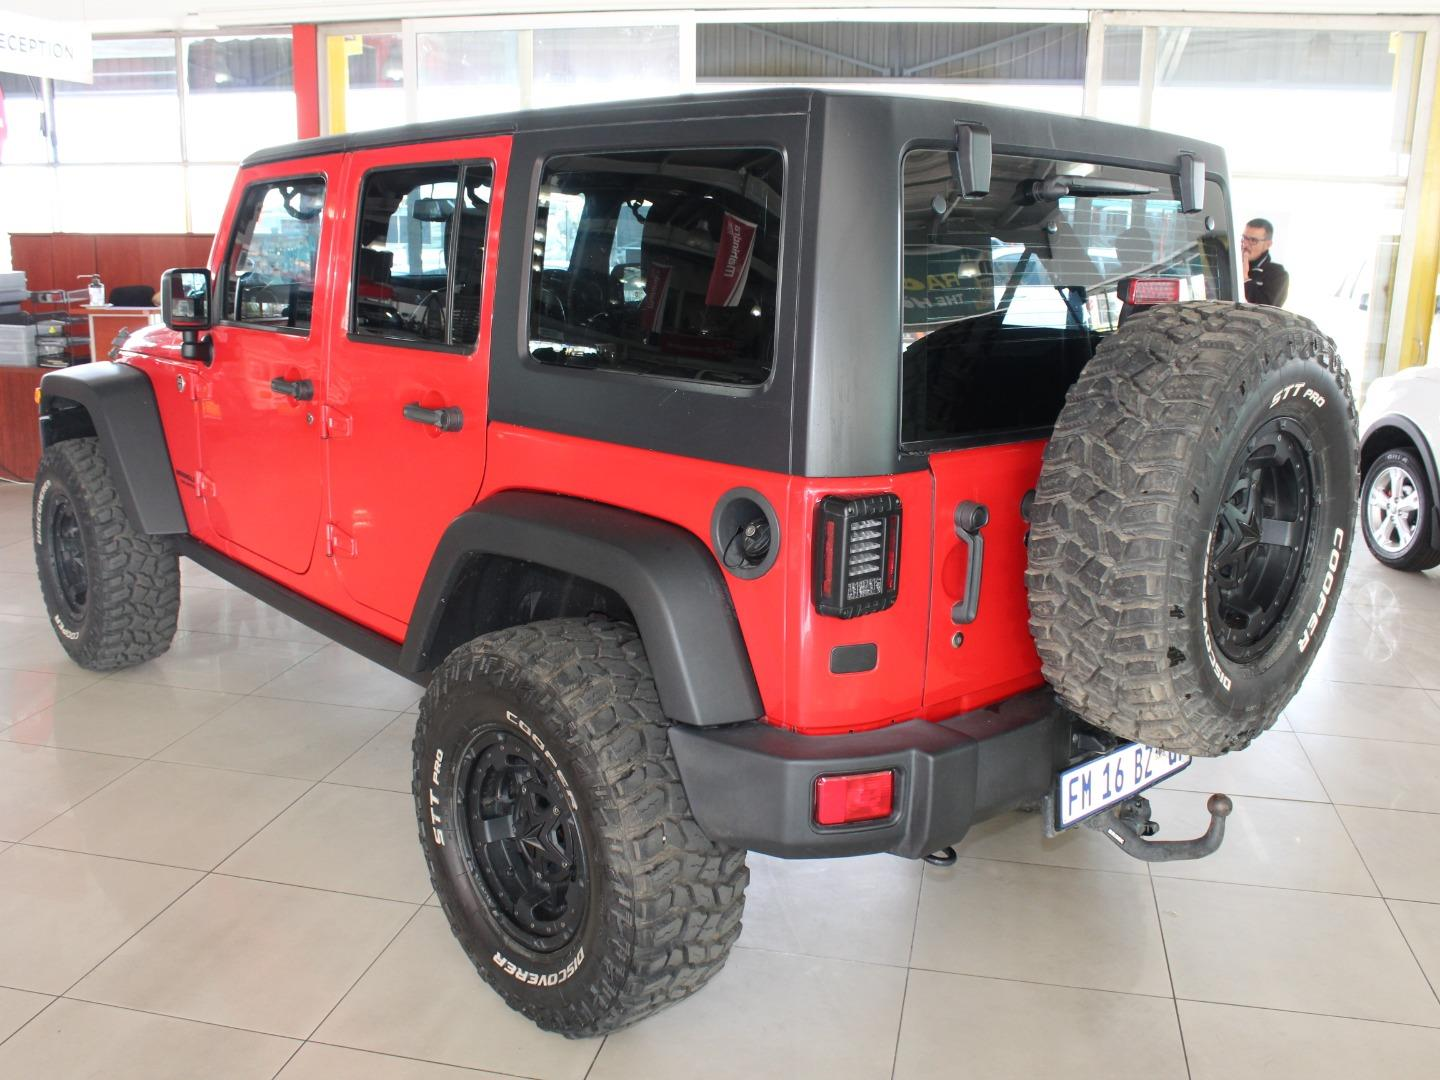 2016 Jeep Wrangler Unlimited 3.6L Rubicon- Picture 6